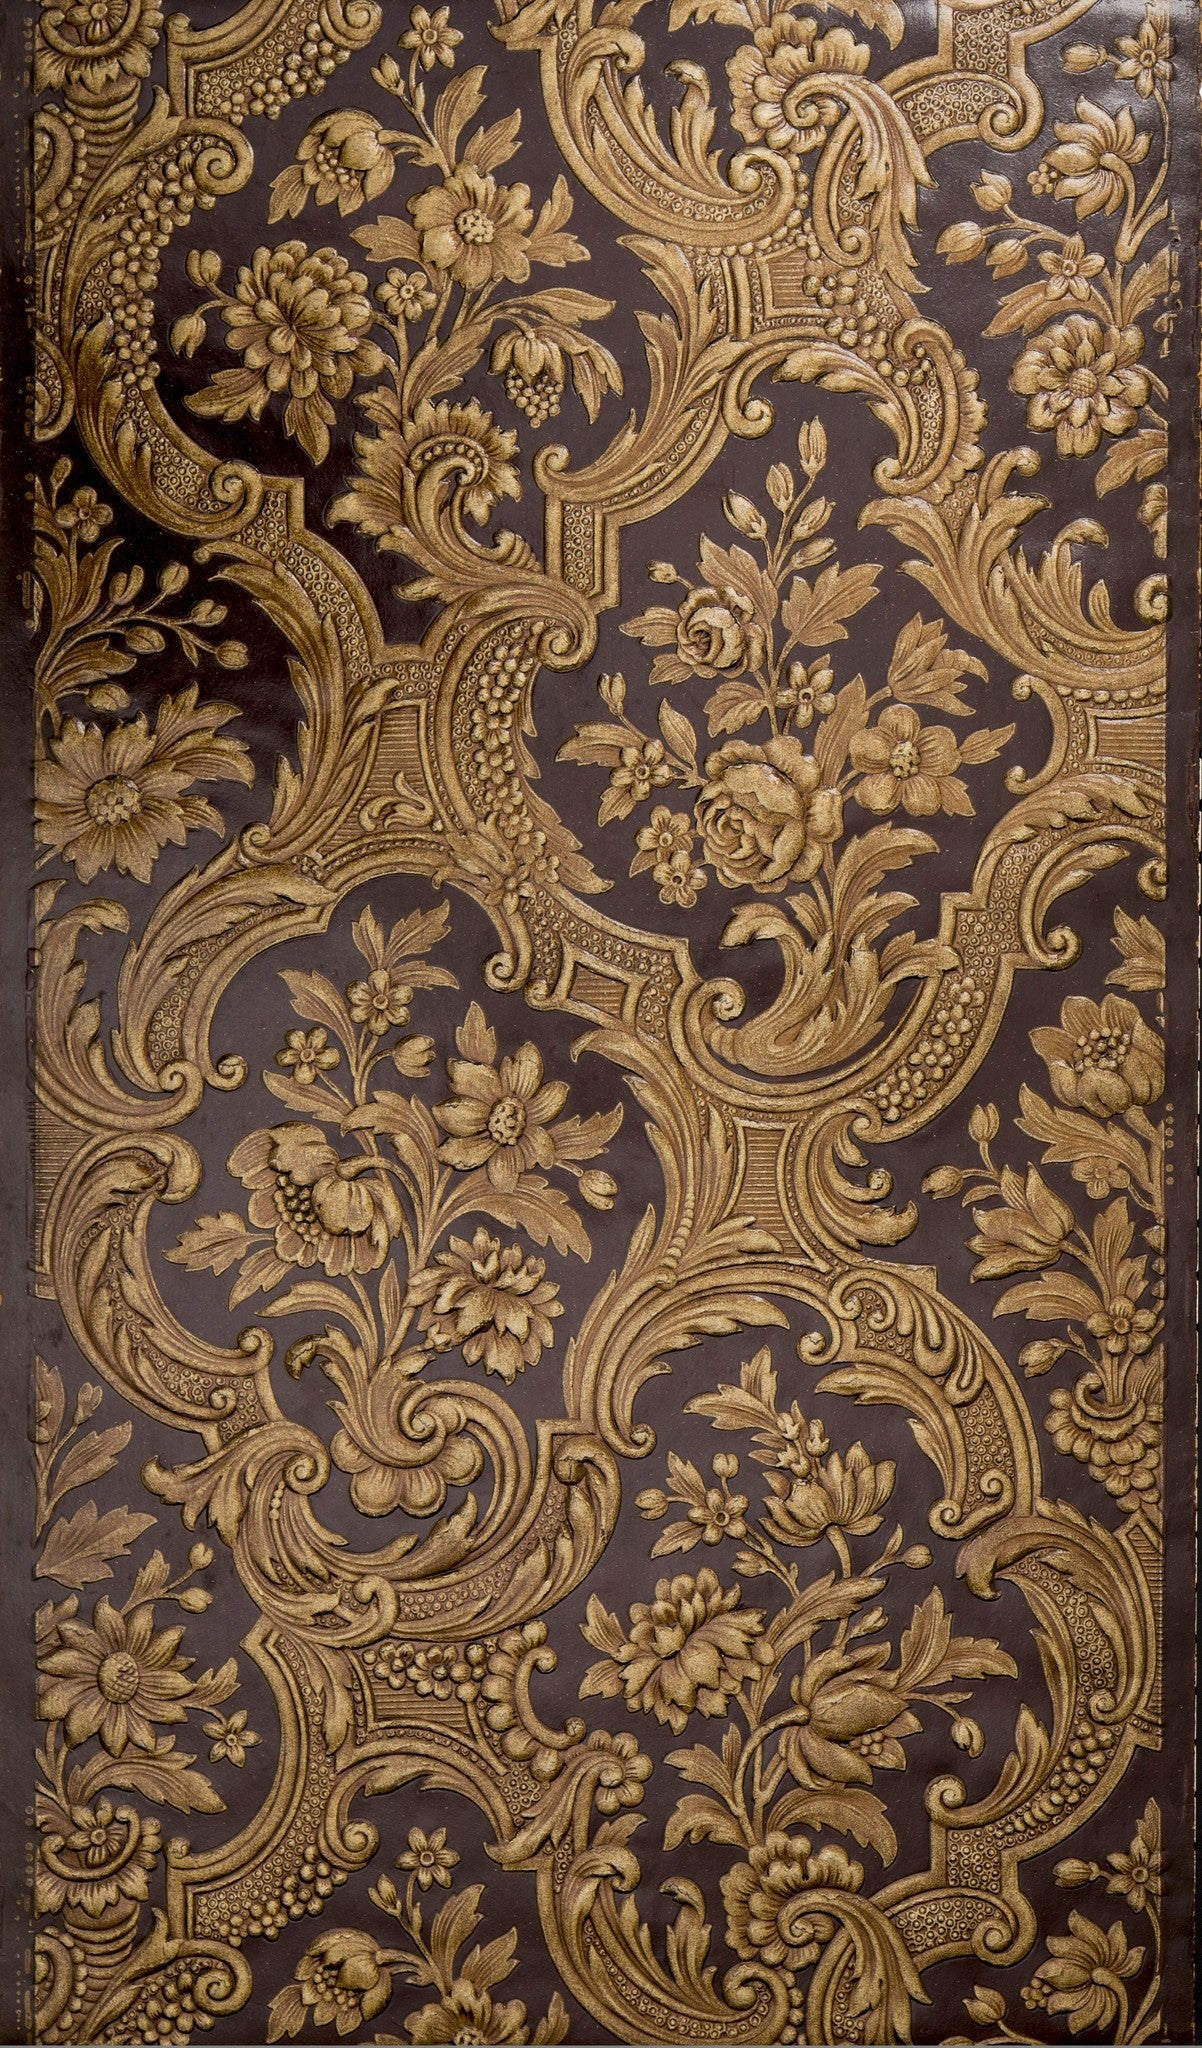 Deeply Embossed Rococo Floral - Antique Wallpaper Remnant